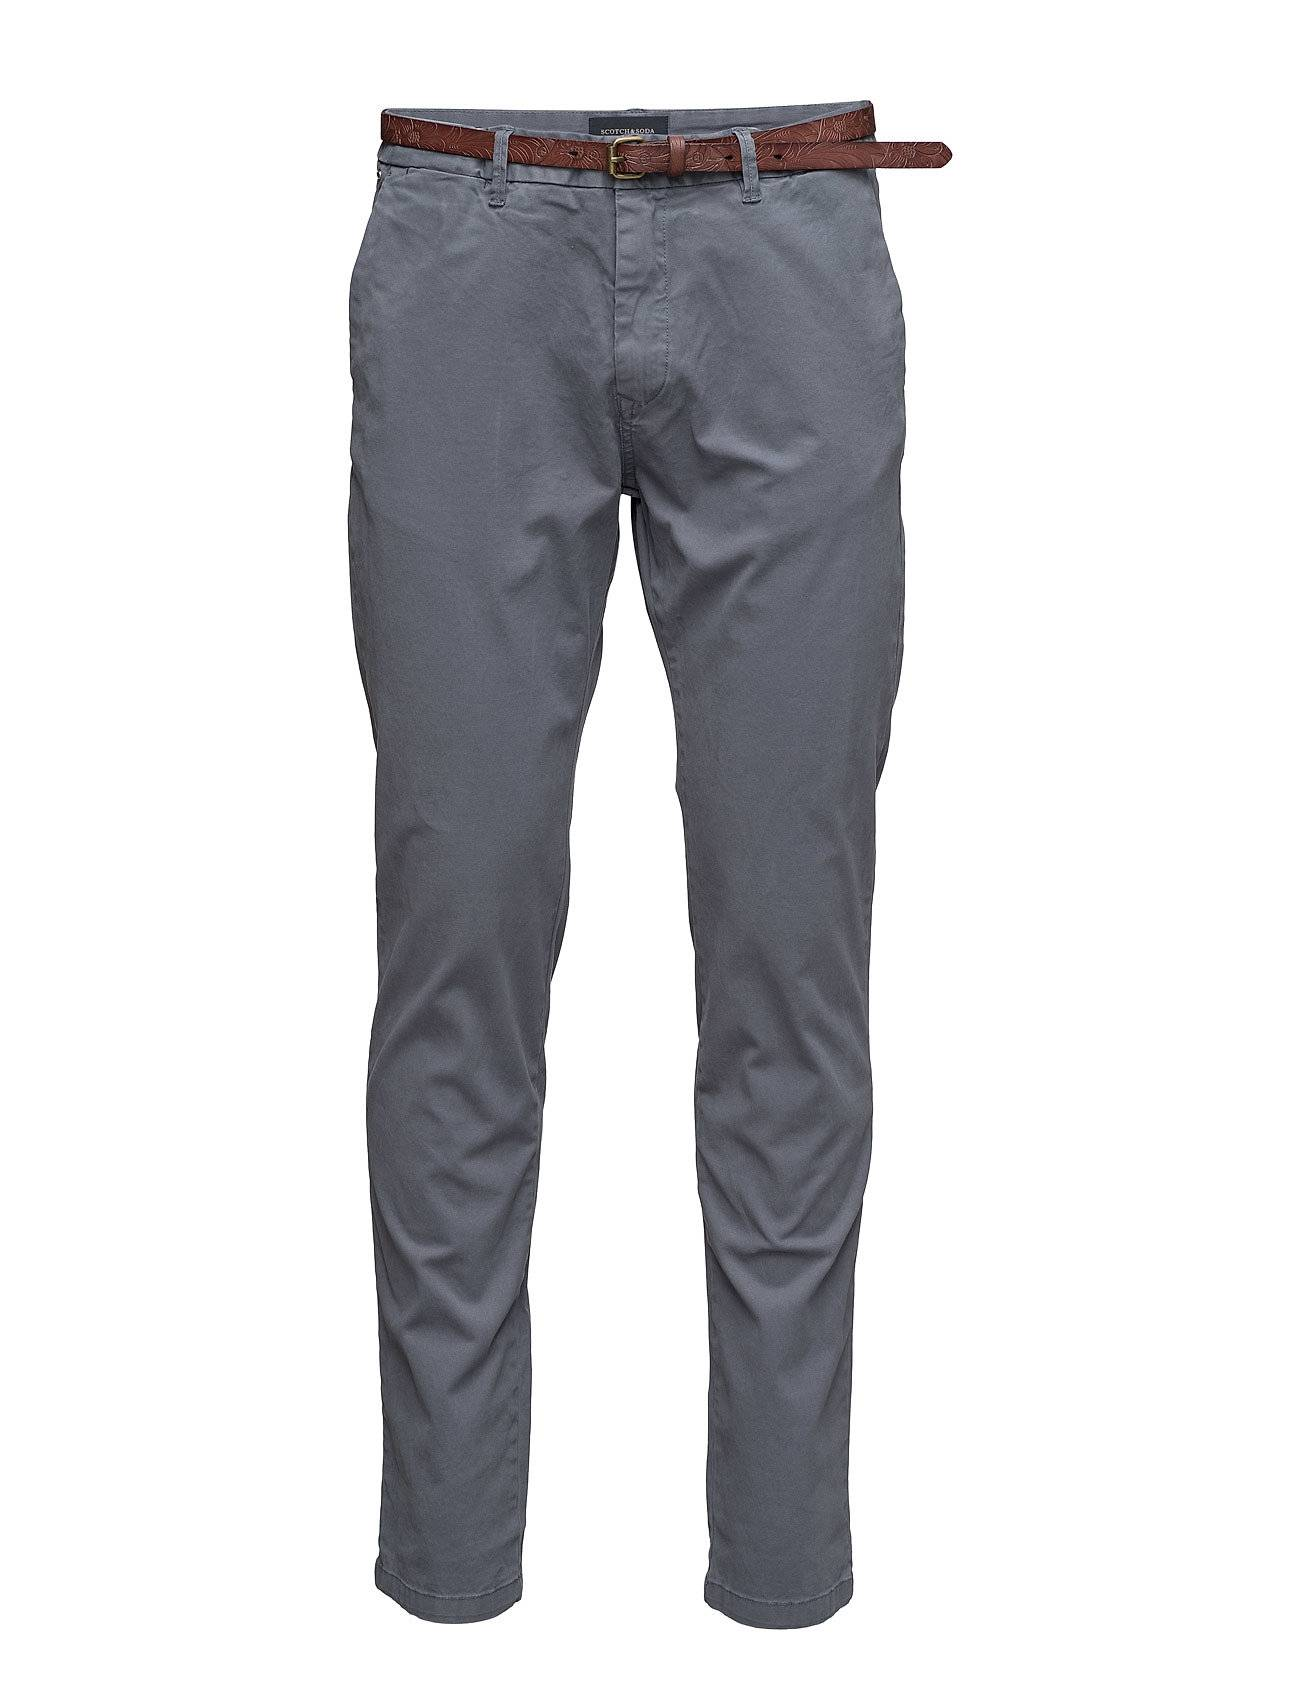 Scotch & Soda Classic Garment Dyed Chino Pant In Stretch Cotton